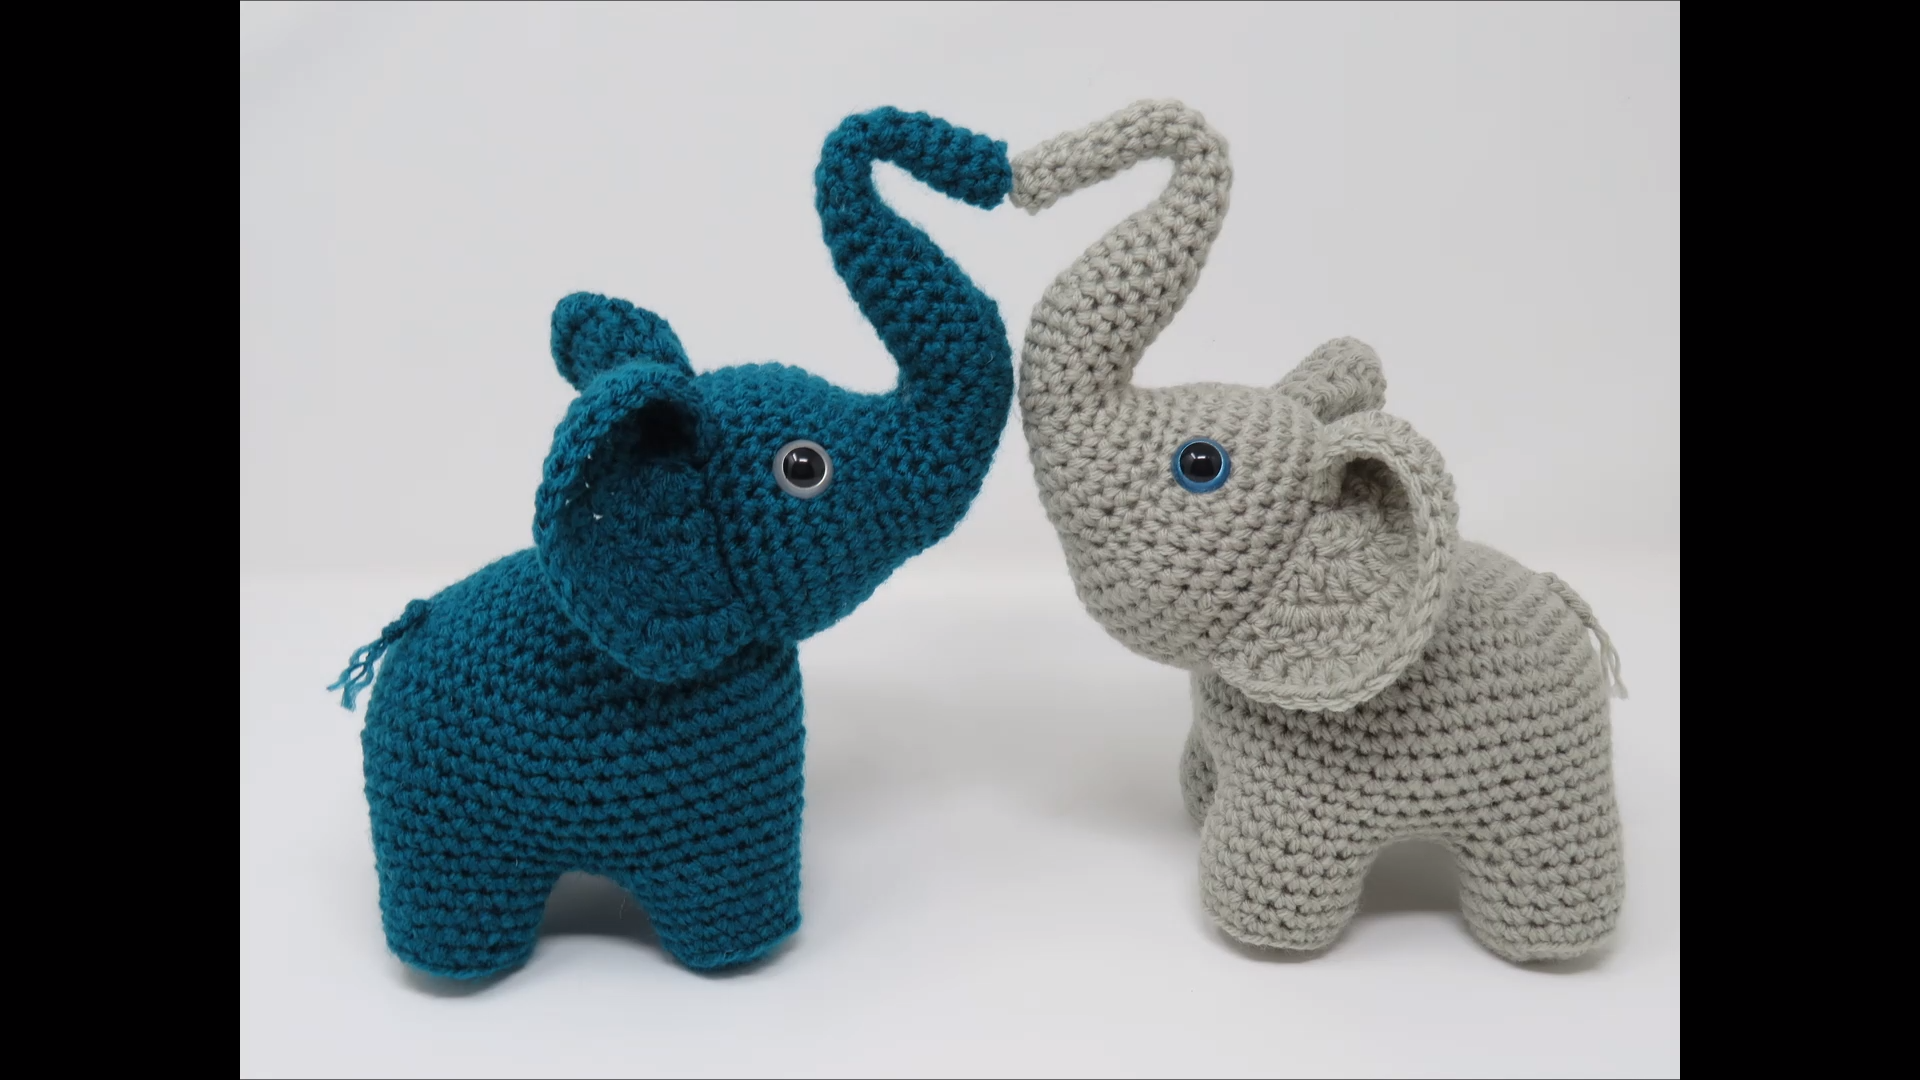 Elephants in Love, free amigurumi crochet pattern, complete video tutorial and written pattern